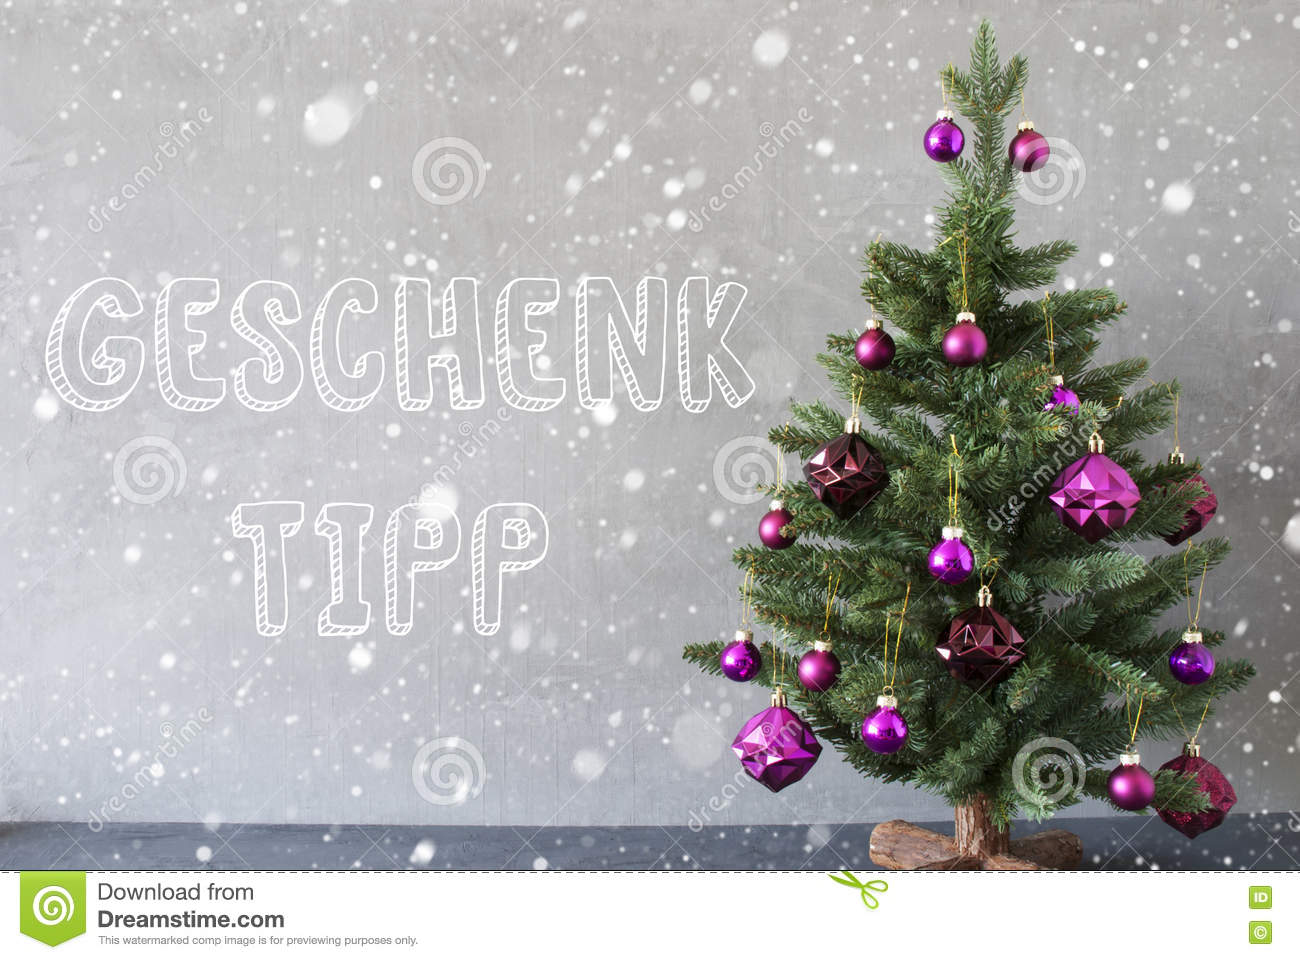 Christmas Tree, Snowflakes, Cement Wall, Geschenk Tipp Means Gift ...